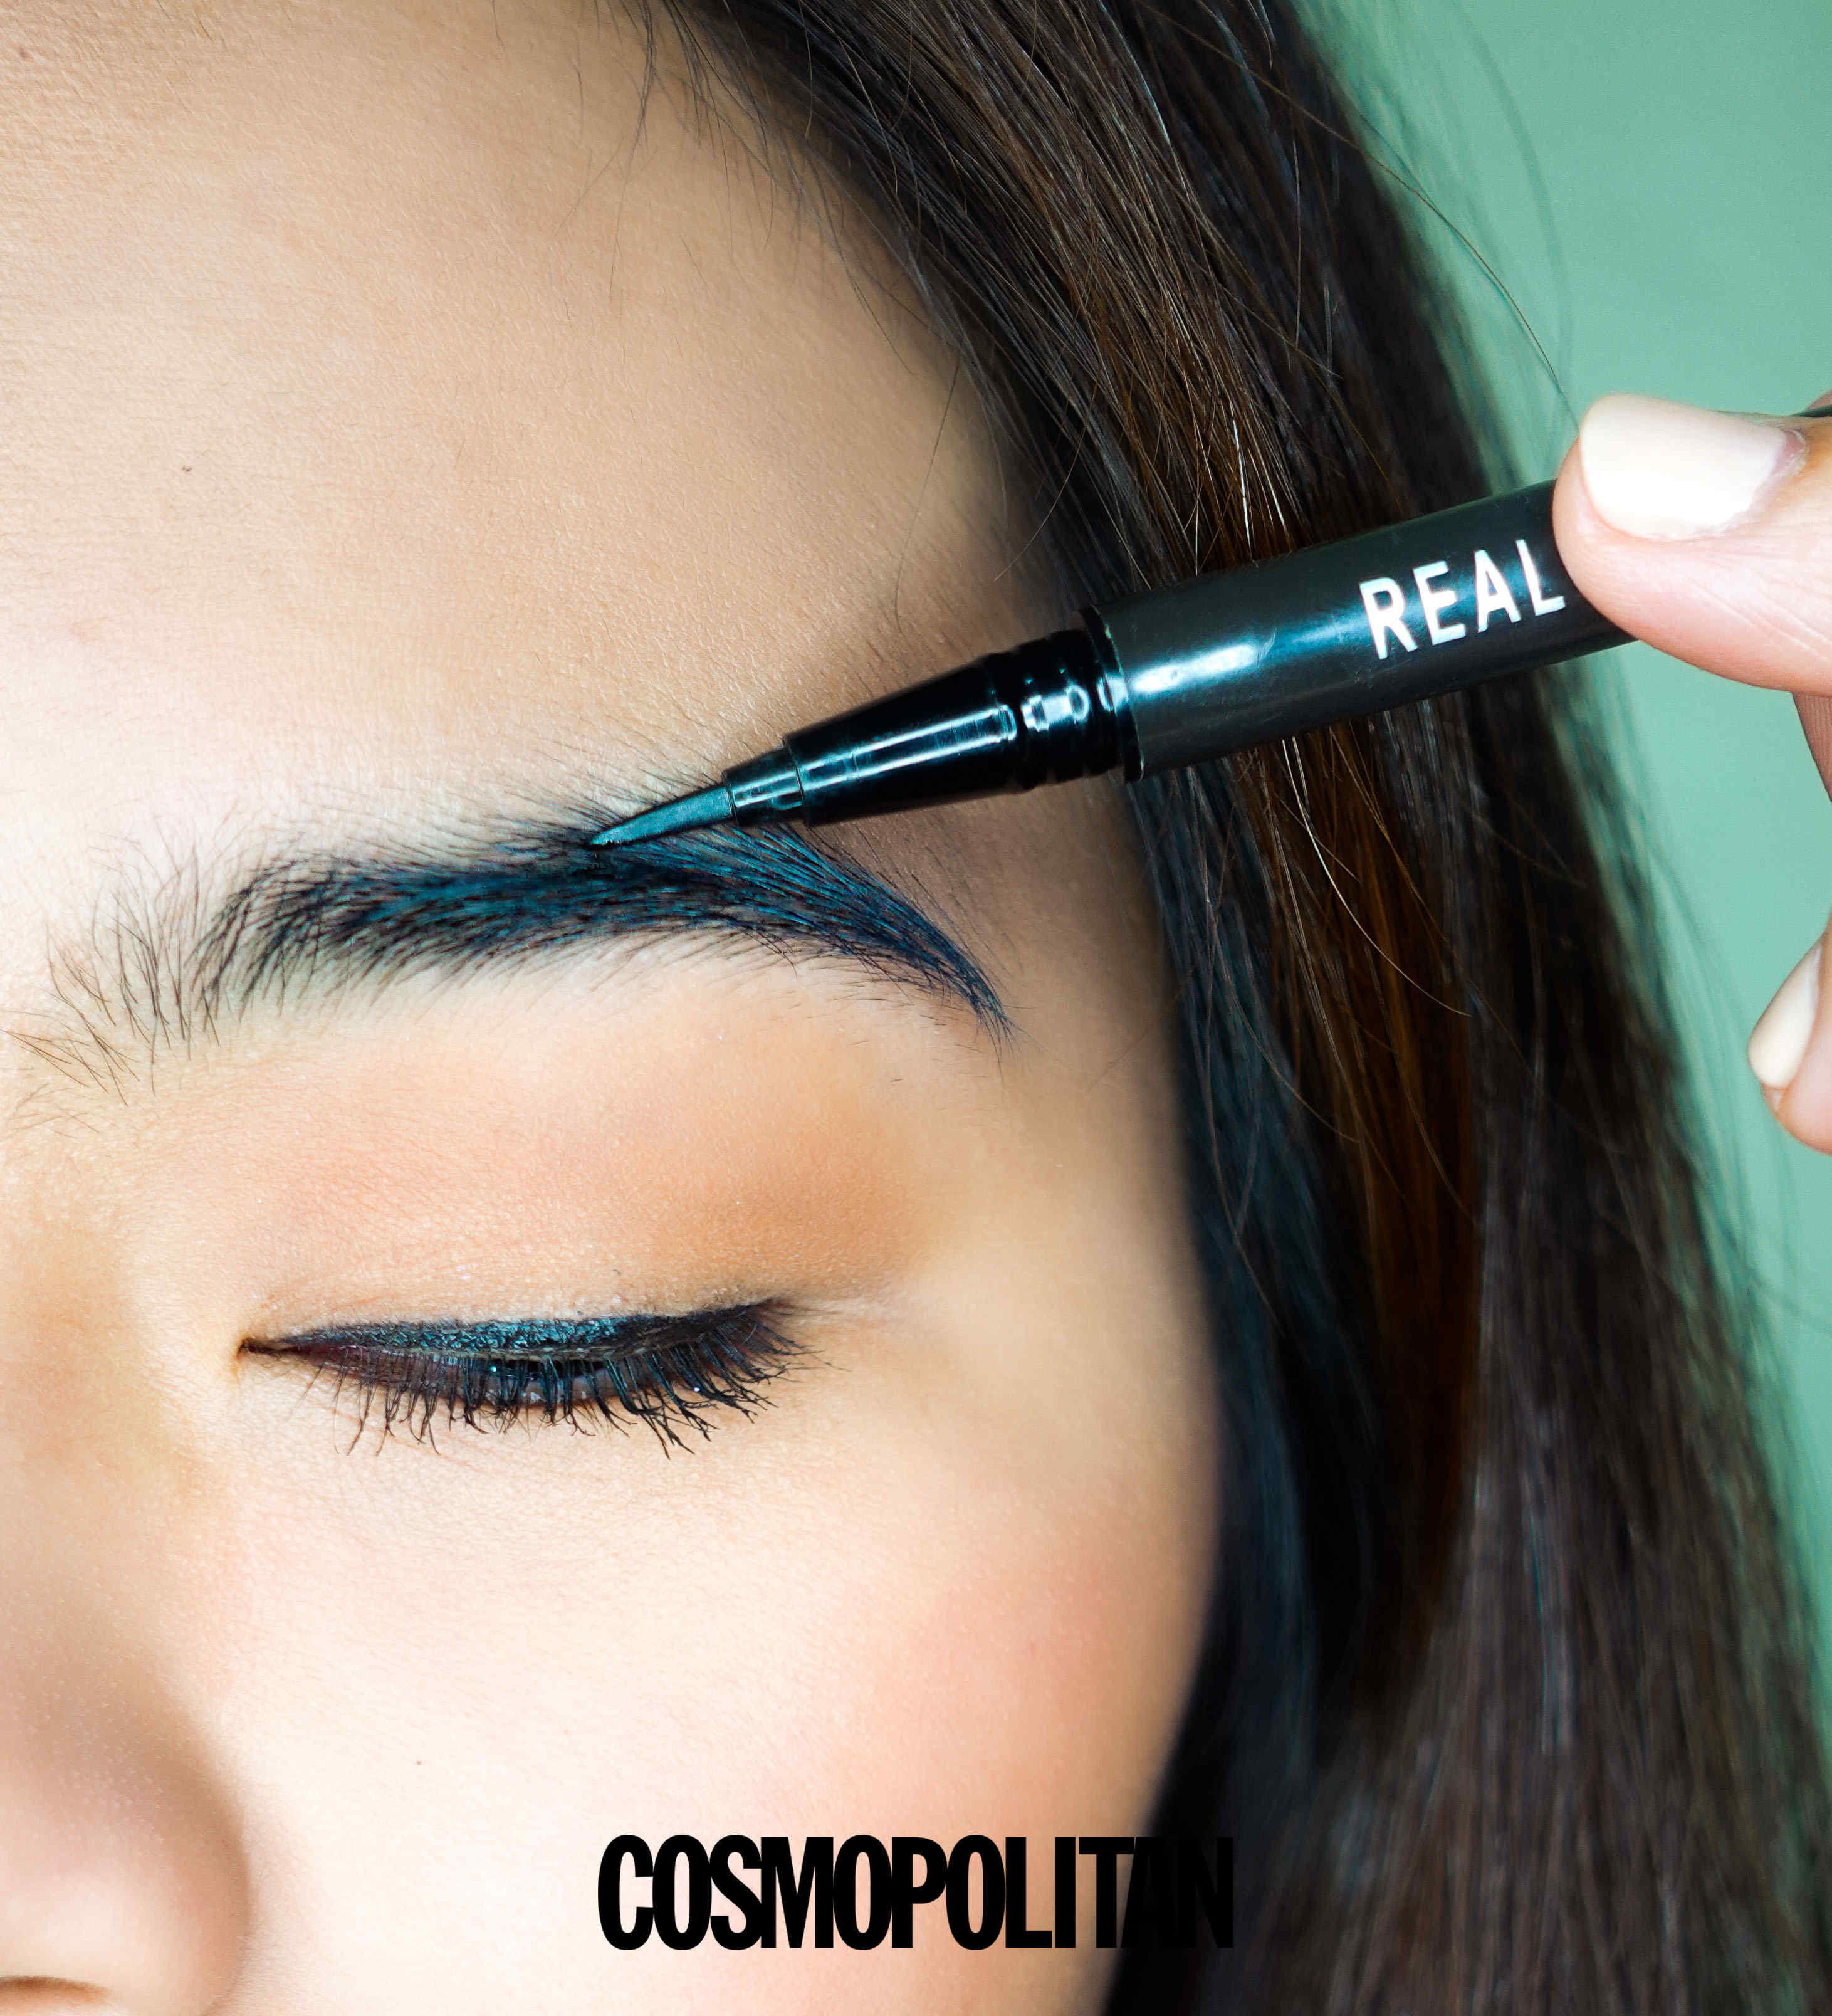 Easy 5-Step Routine For Bushy Brows - Fill in the sparse areas.